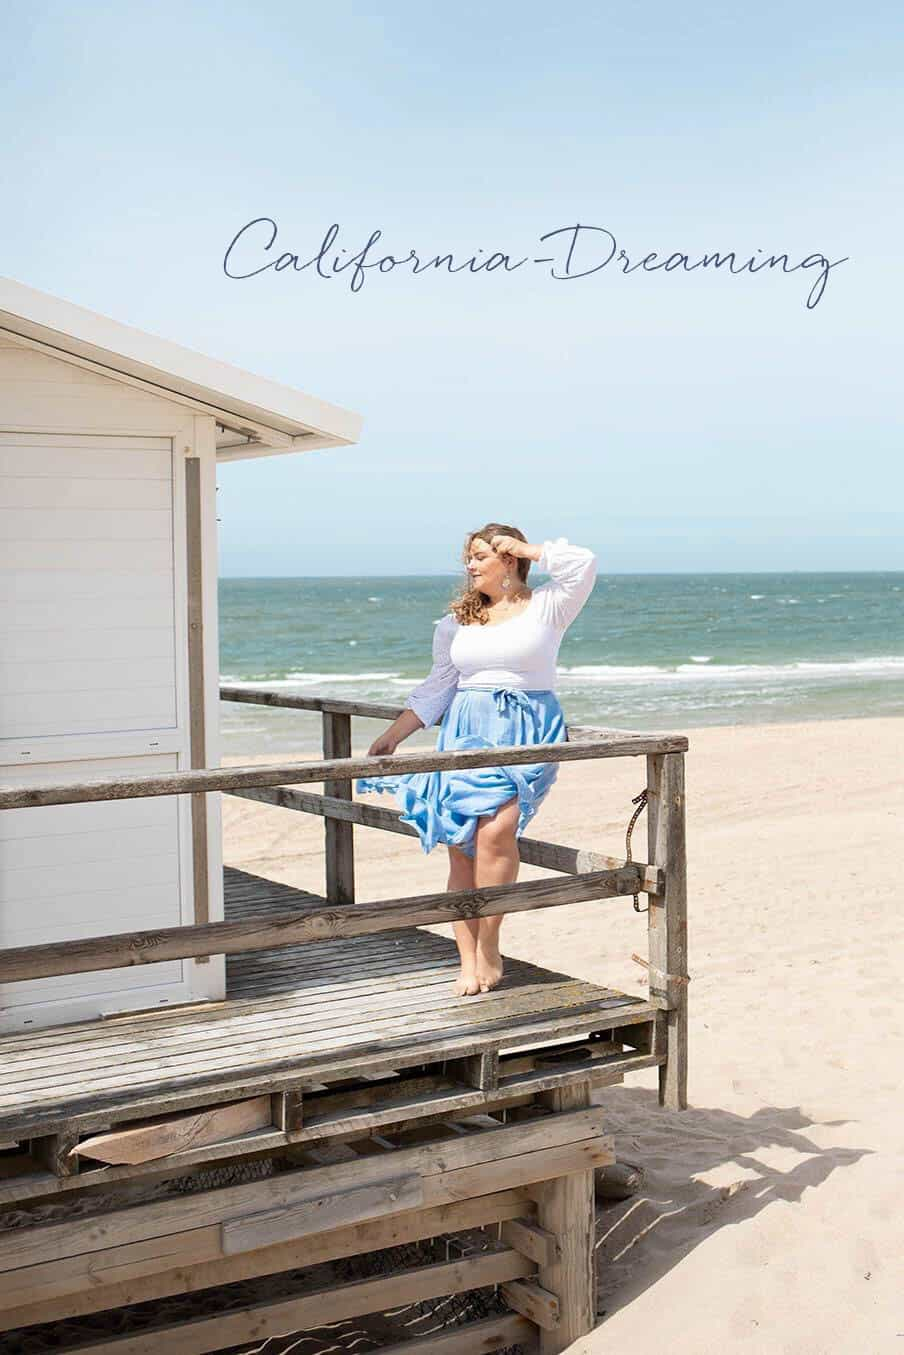 Auf Weltreise: California-Dreaming in SPO